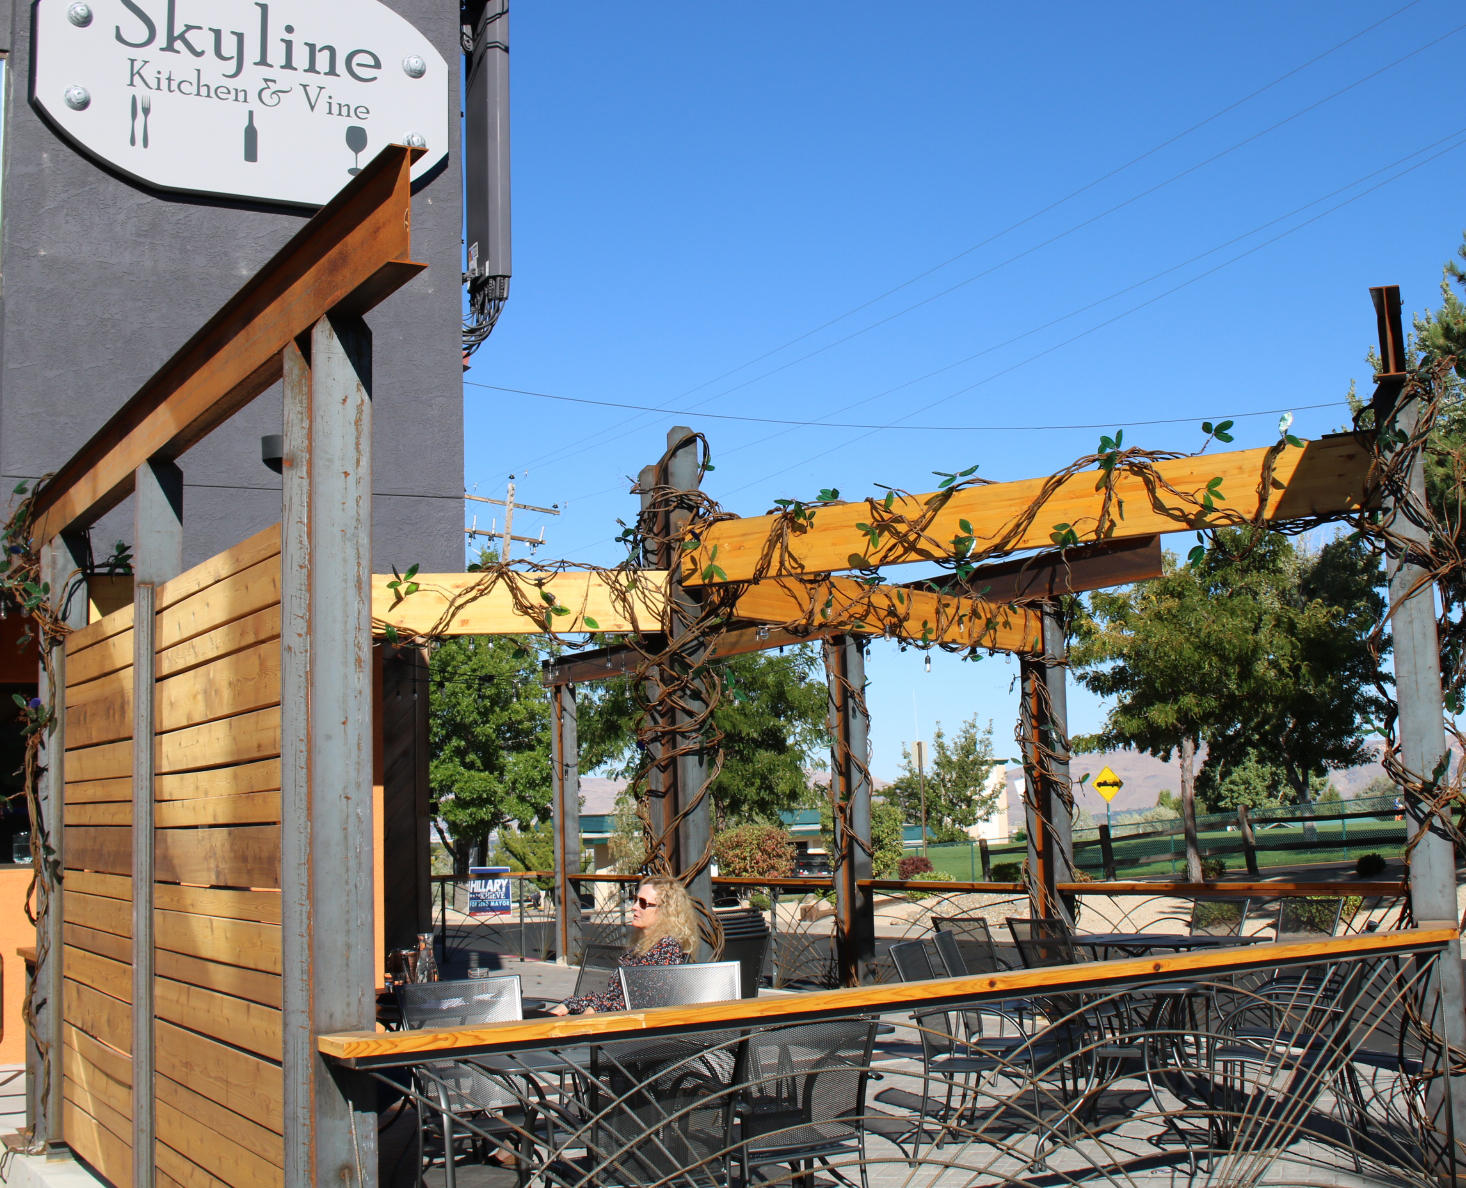 Genial Brown Metal Vines With Glass Leaves Wrap Around Patio Posts At A Reno  Restaurant. They